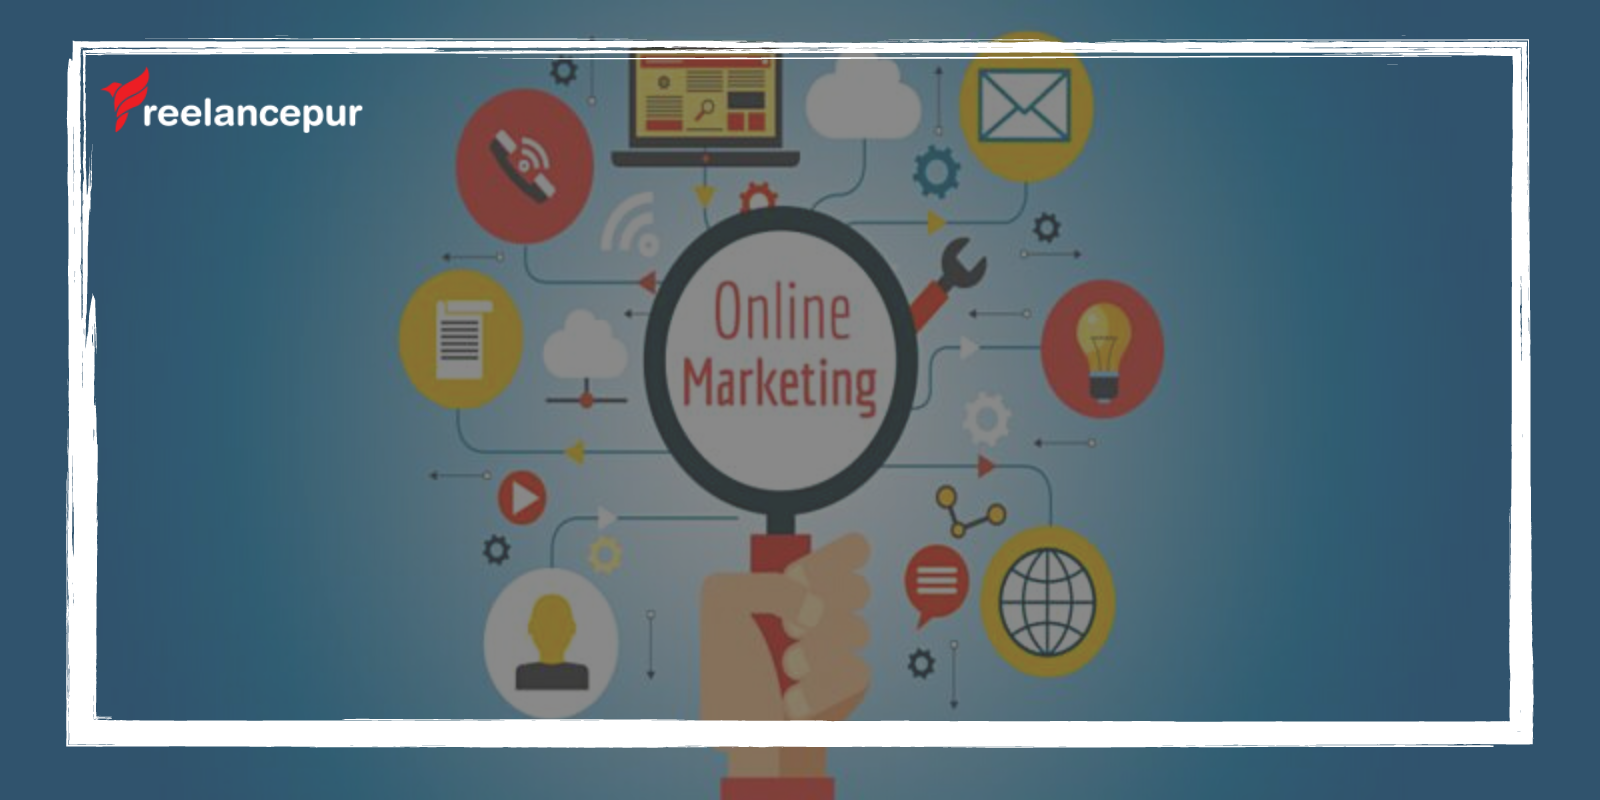 Internet marketing with social media analysis is also famous as online marketing.